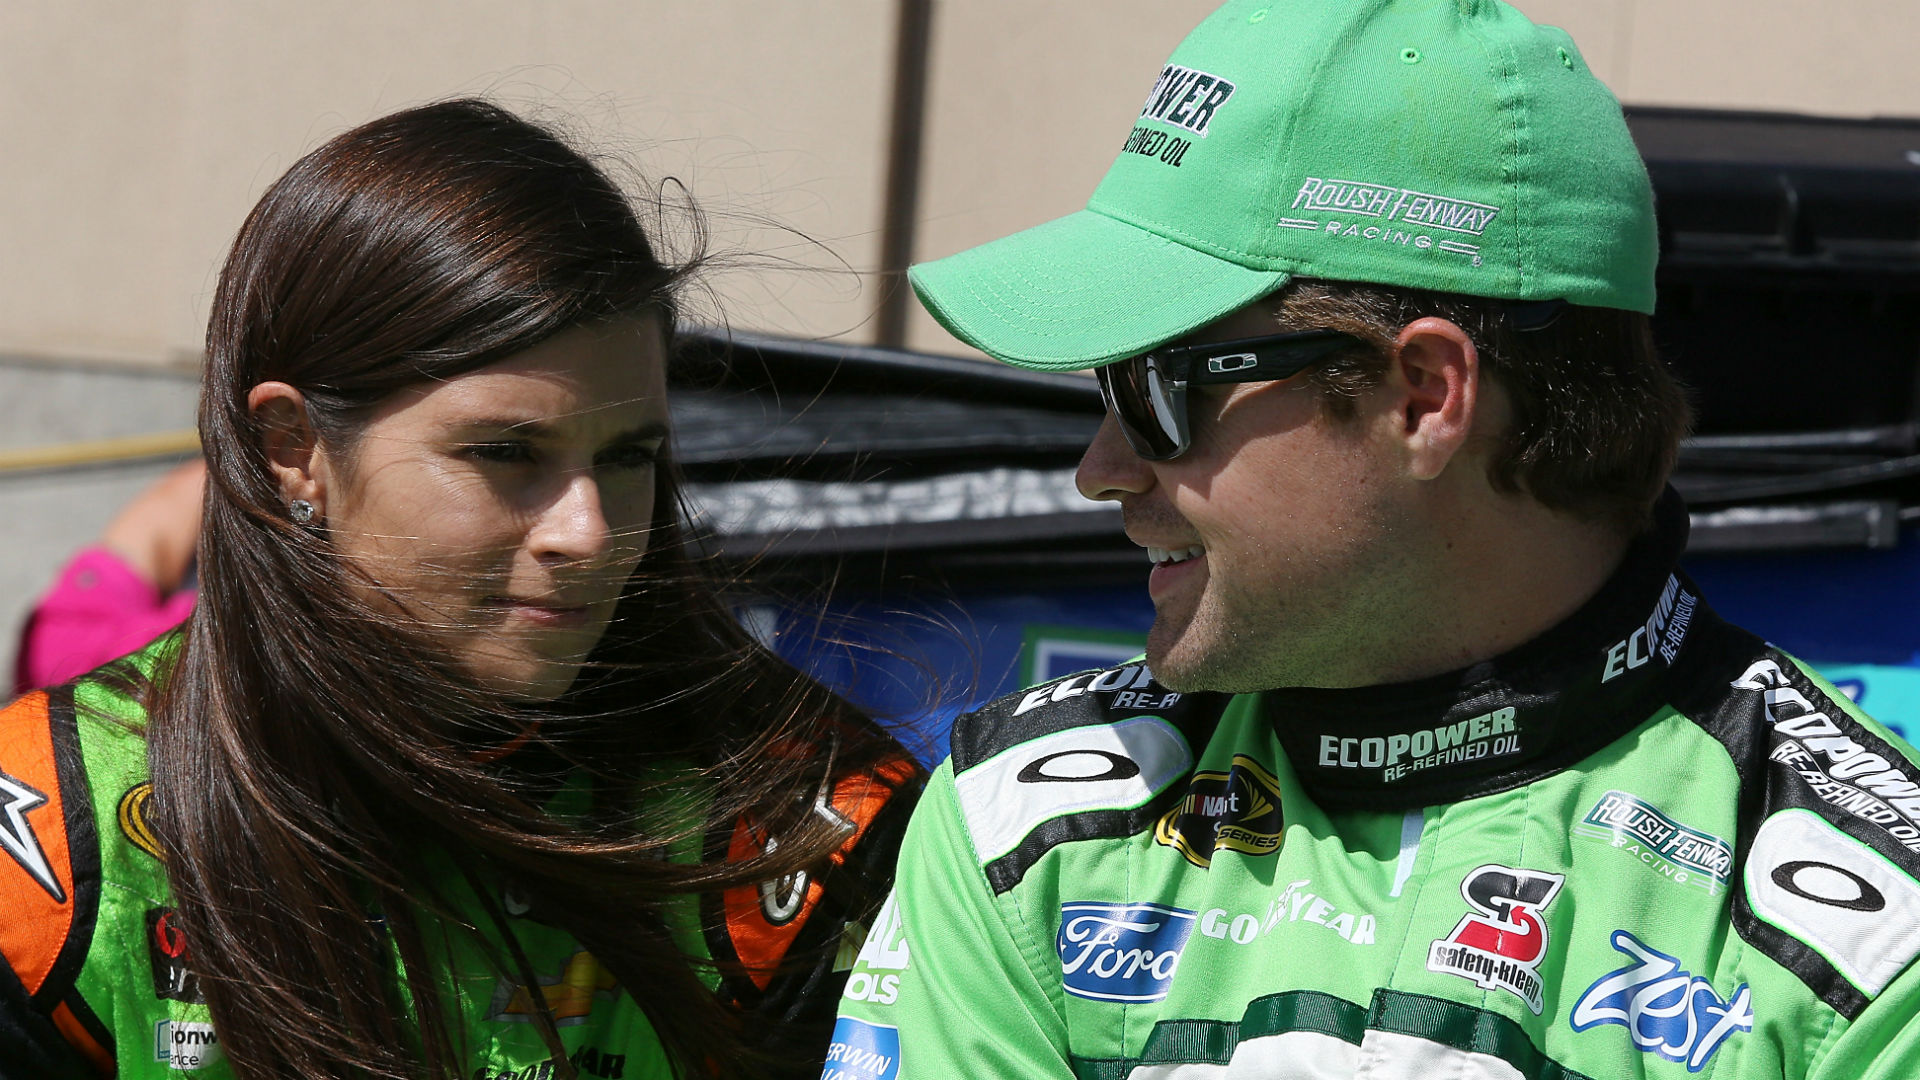 Danica Patrick and Boyfriend Ricky Stenhouse Jr. Split After Five Years